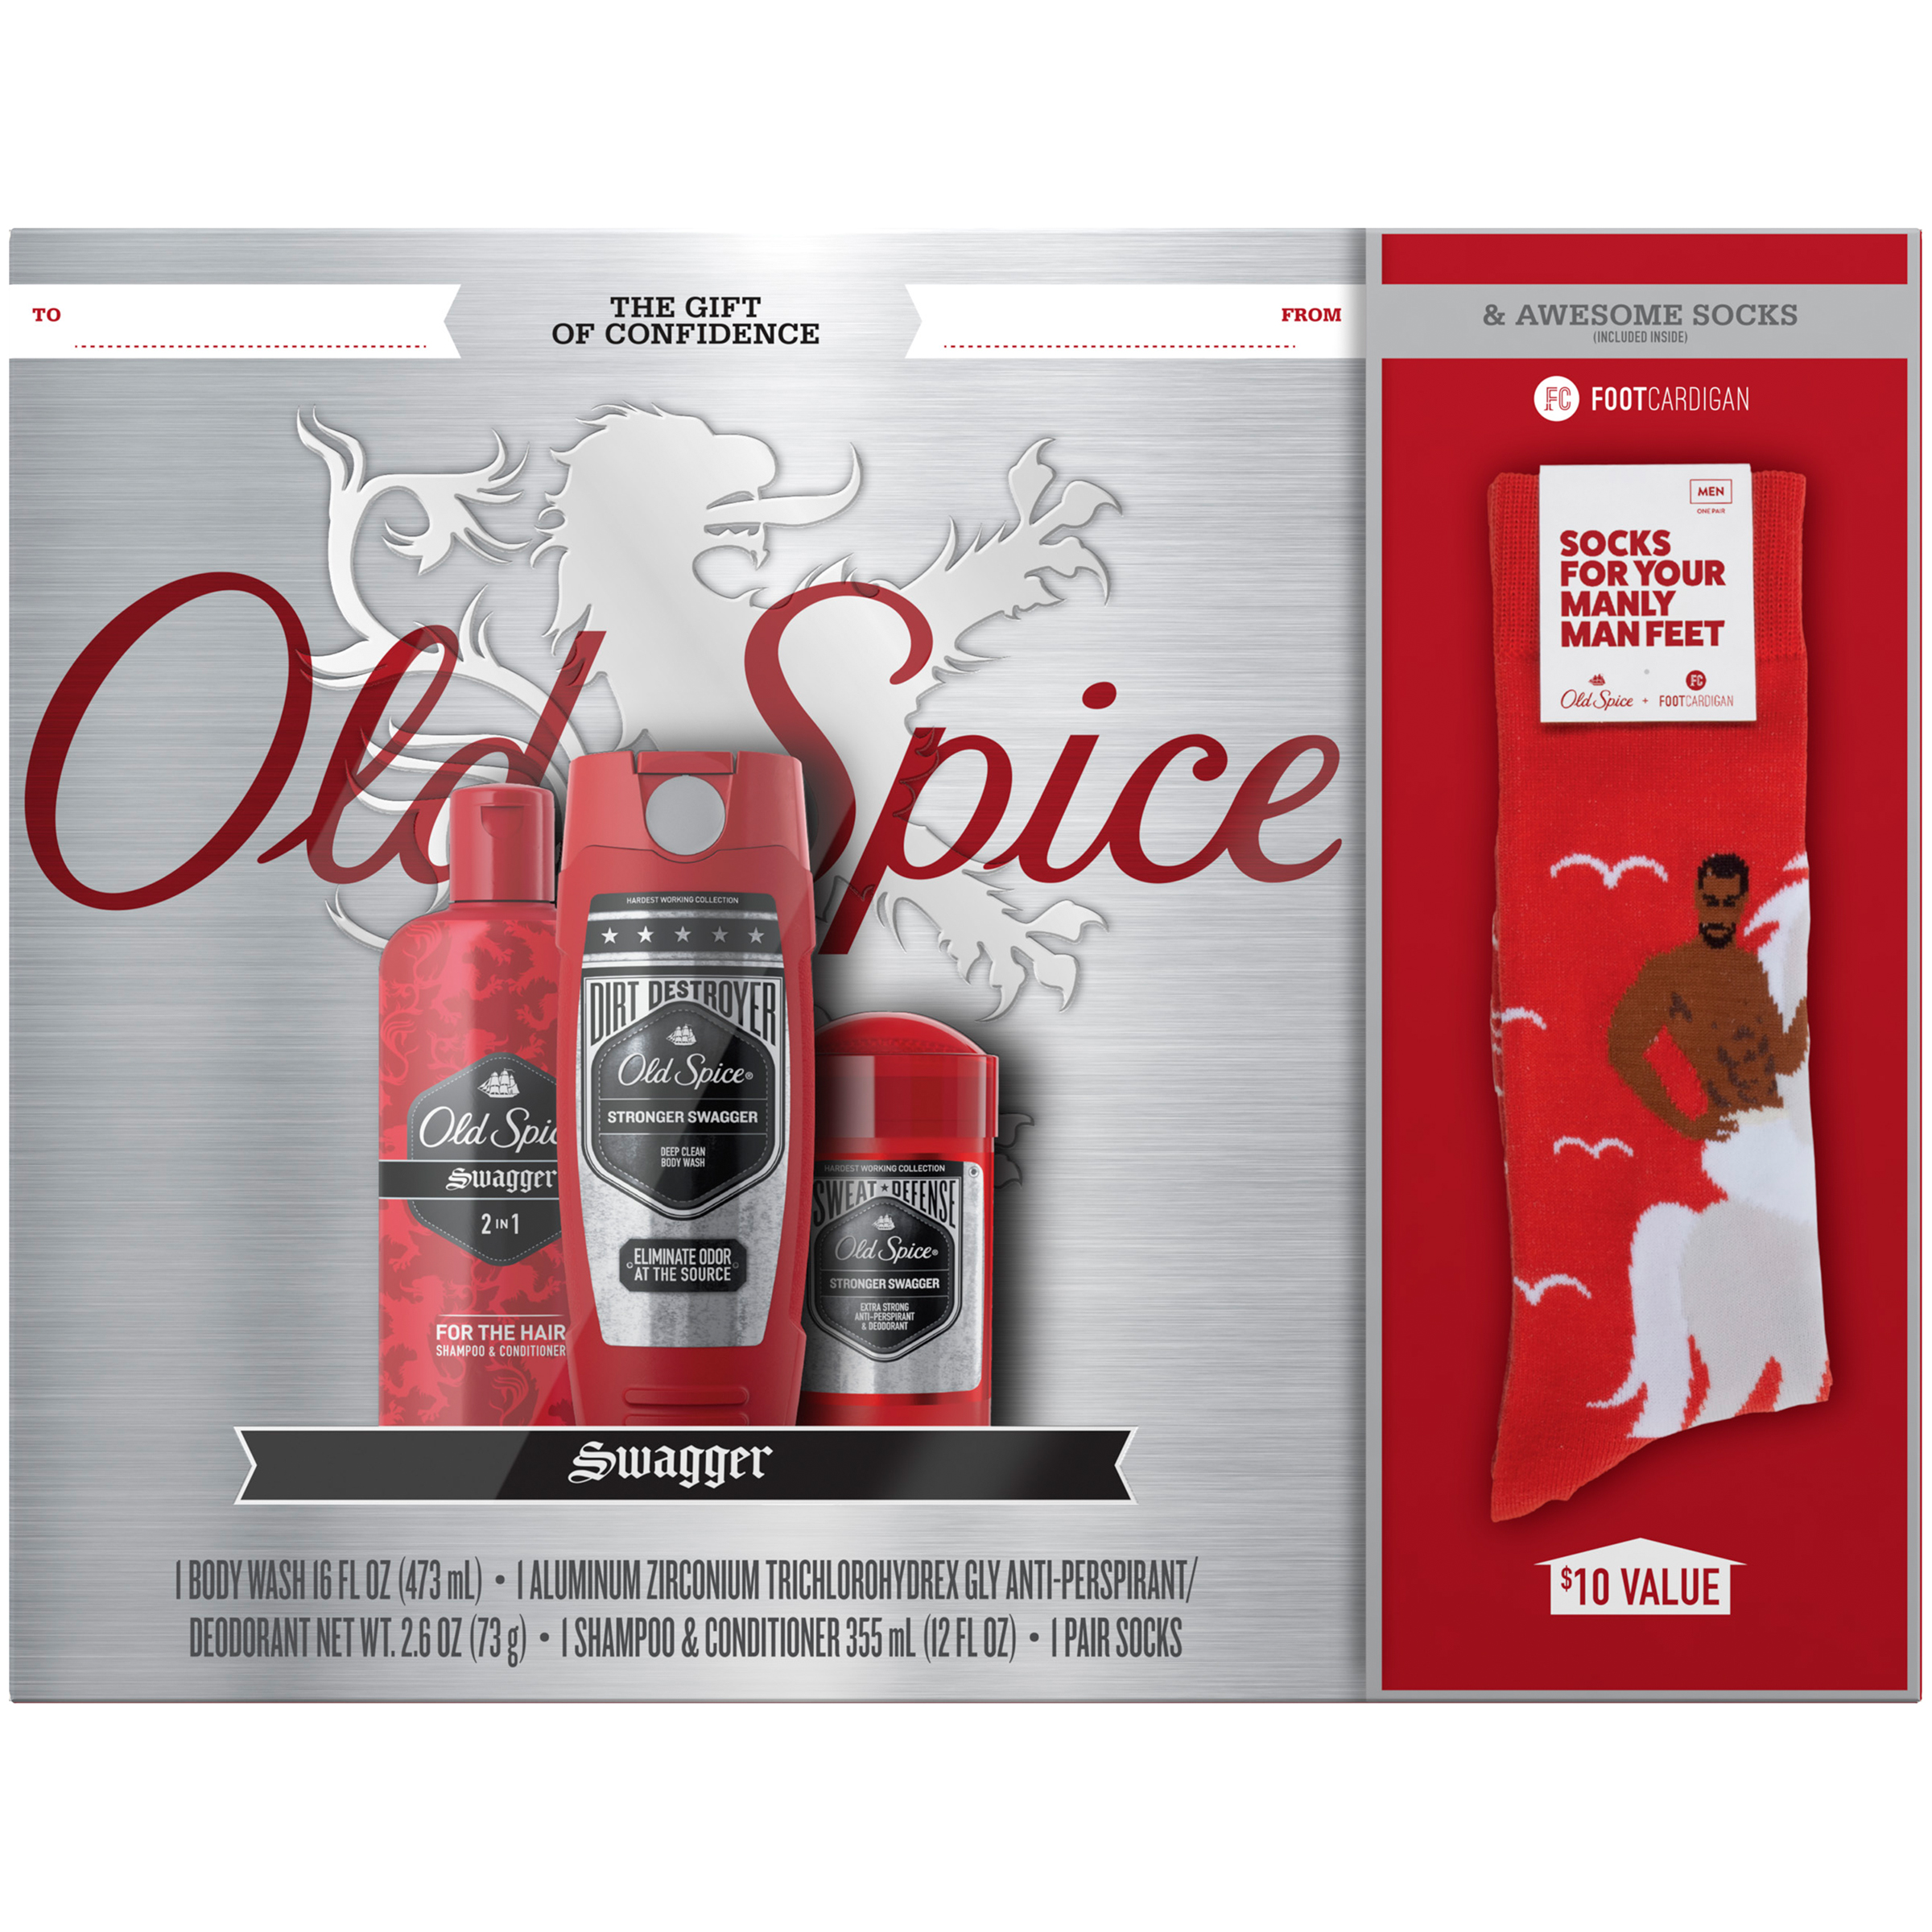 Old Spice Swagger Hardest Working Collection Body Wash, Deodorant and Shampoo & Conditioner Gift of Confidence Gift Pack (Free Socks Included)